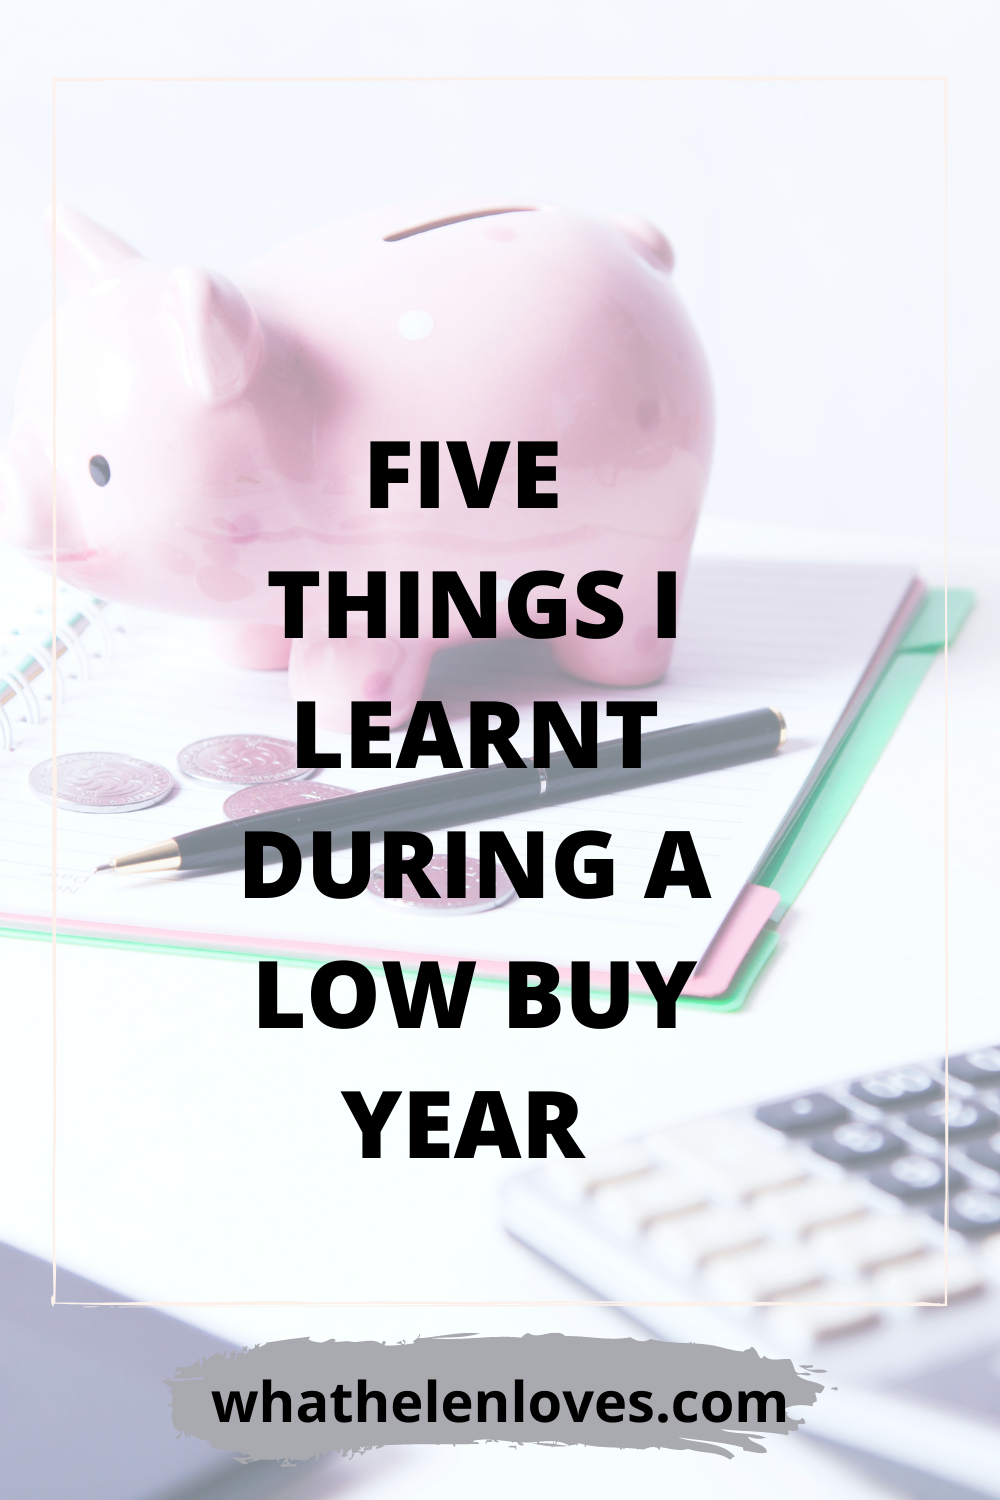 Pinterest pin for a post about five things I learnt during a low buy year.